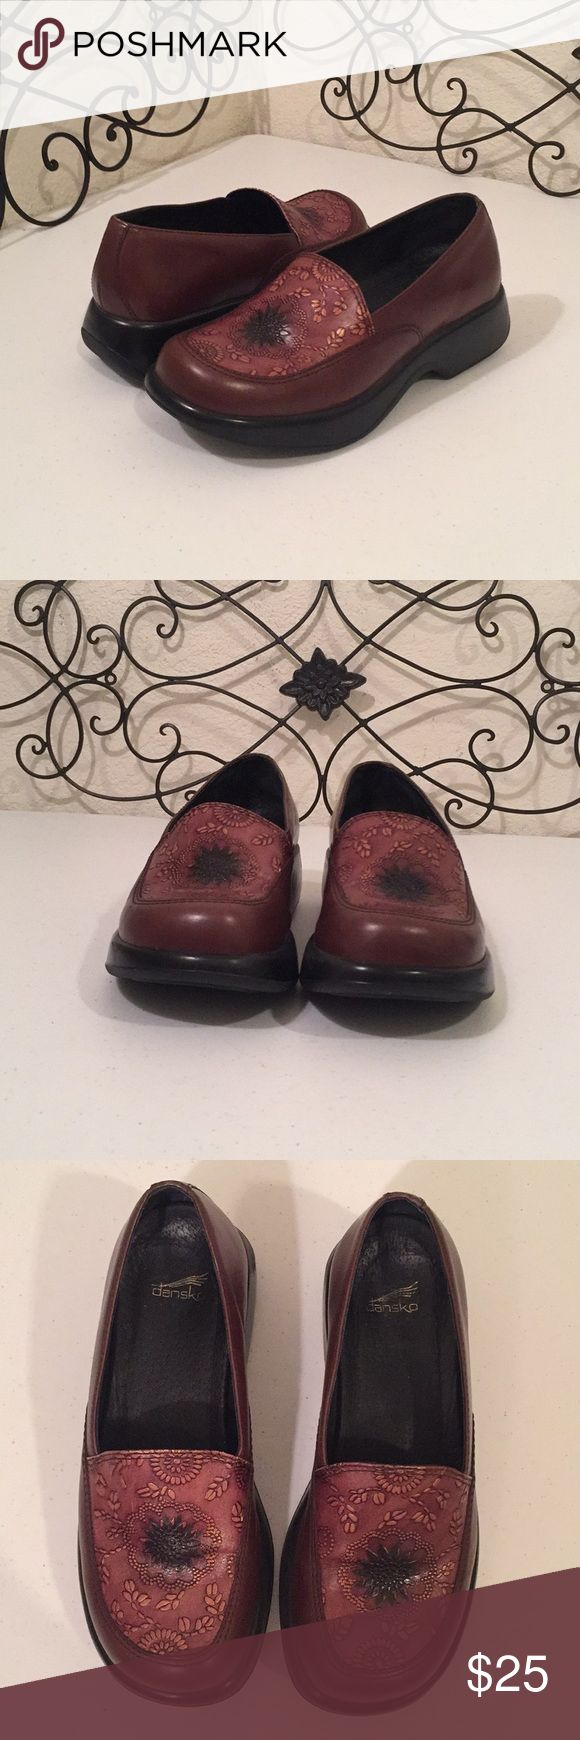 DANSKO Embossed Clogs PRICE FIRM. EXCELLENT CONDITION. Embossed copper metallic floral design, leather upper and lining, made in Brazil. Please check out more of the Posh Boutique Outlet!💎 Dansko Shoes Mules & Clogs